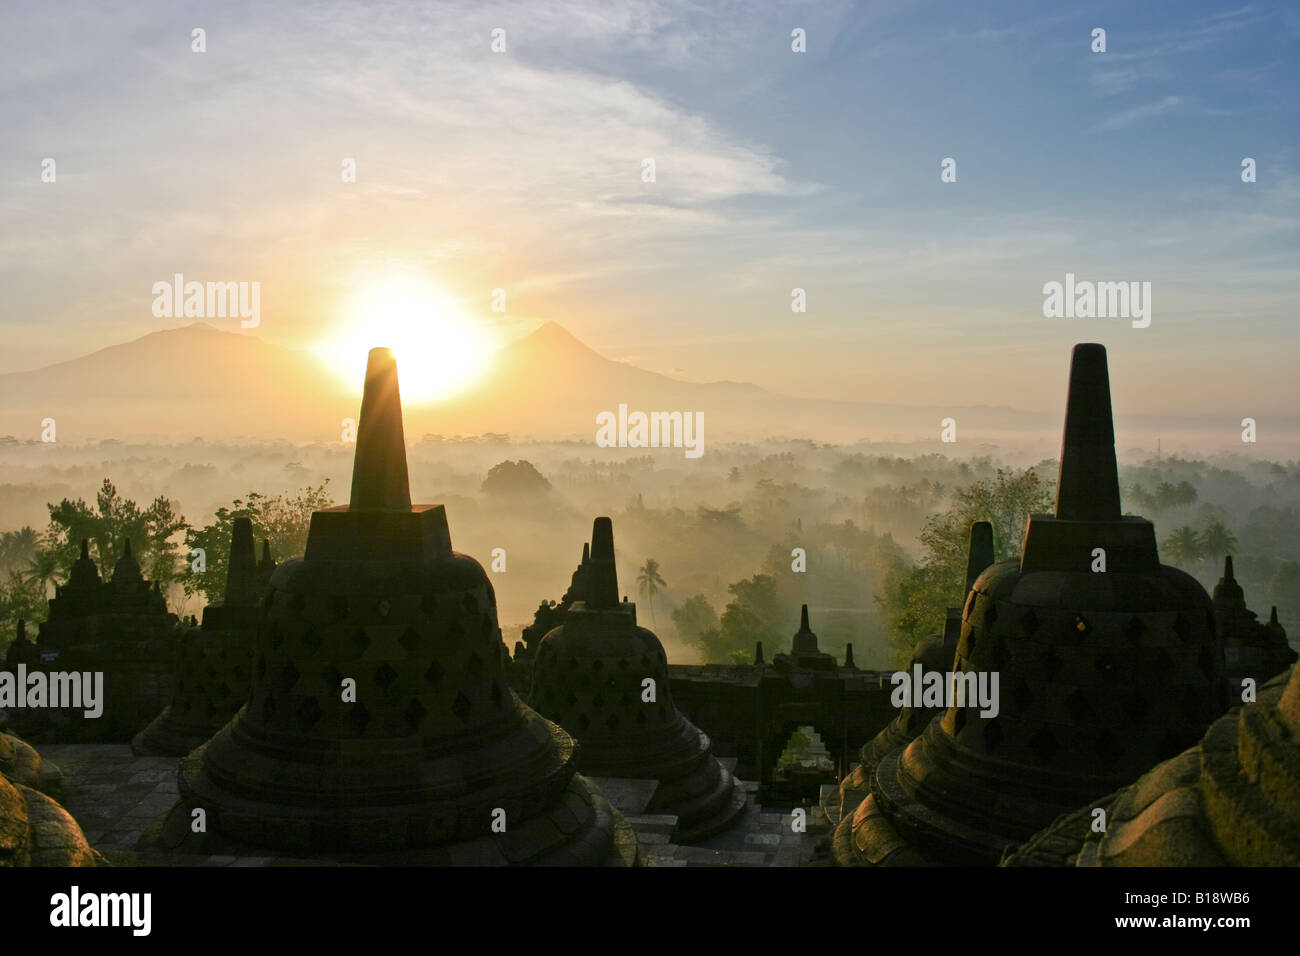 Sunrise view of the Merapi volcano from the top of the temple of Borobodur in Central Java - Stock Image